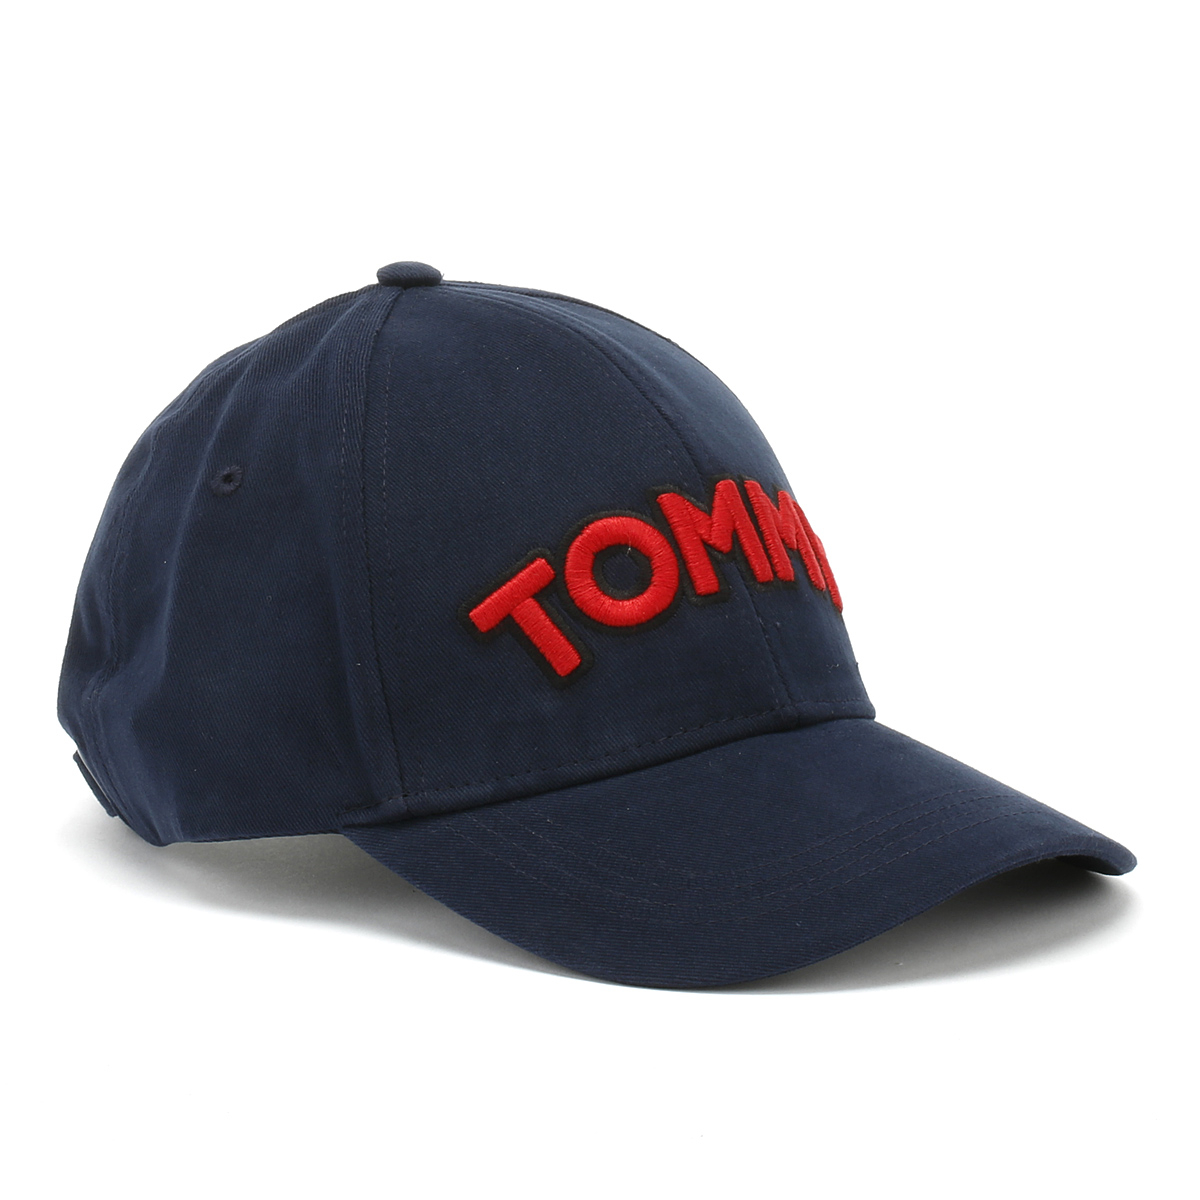 a8310348 Tommy Hilfiger Womens Navy Blue Patch Cap Baseball Hat 8719704559548 ...